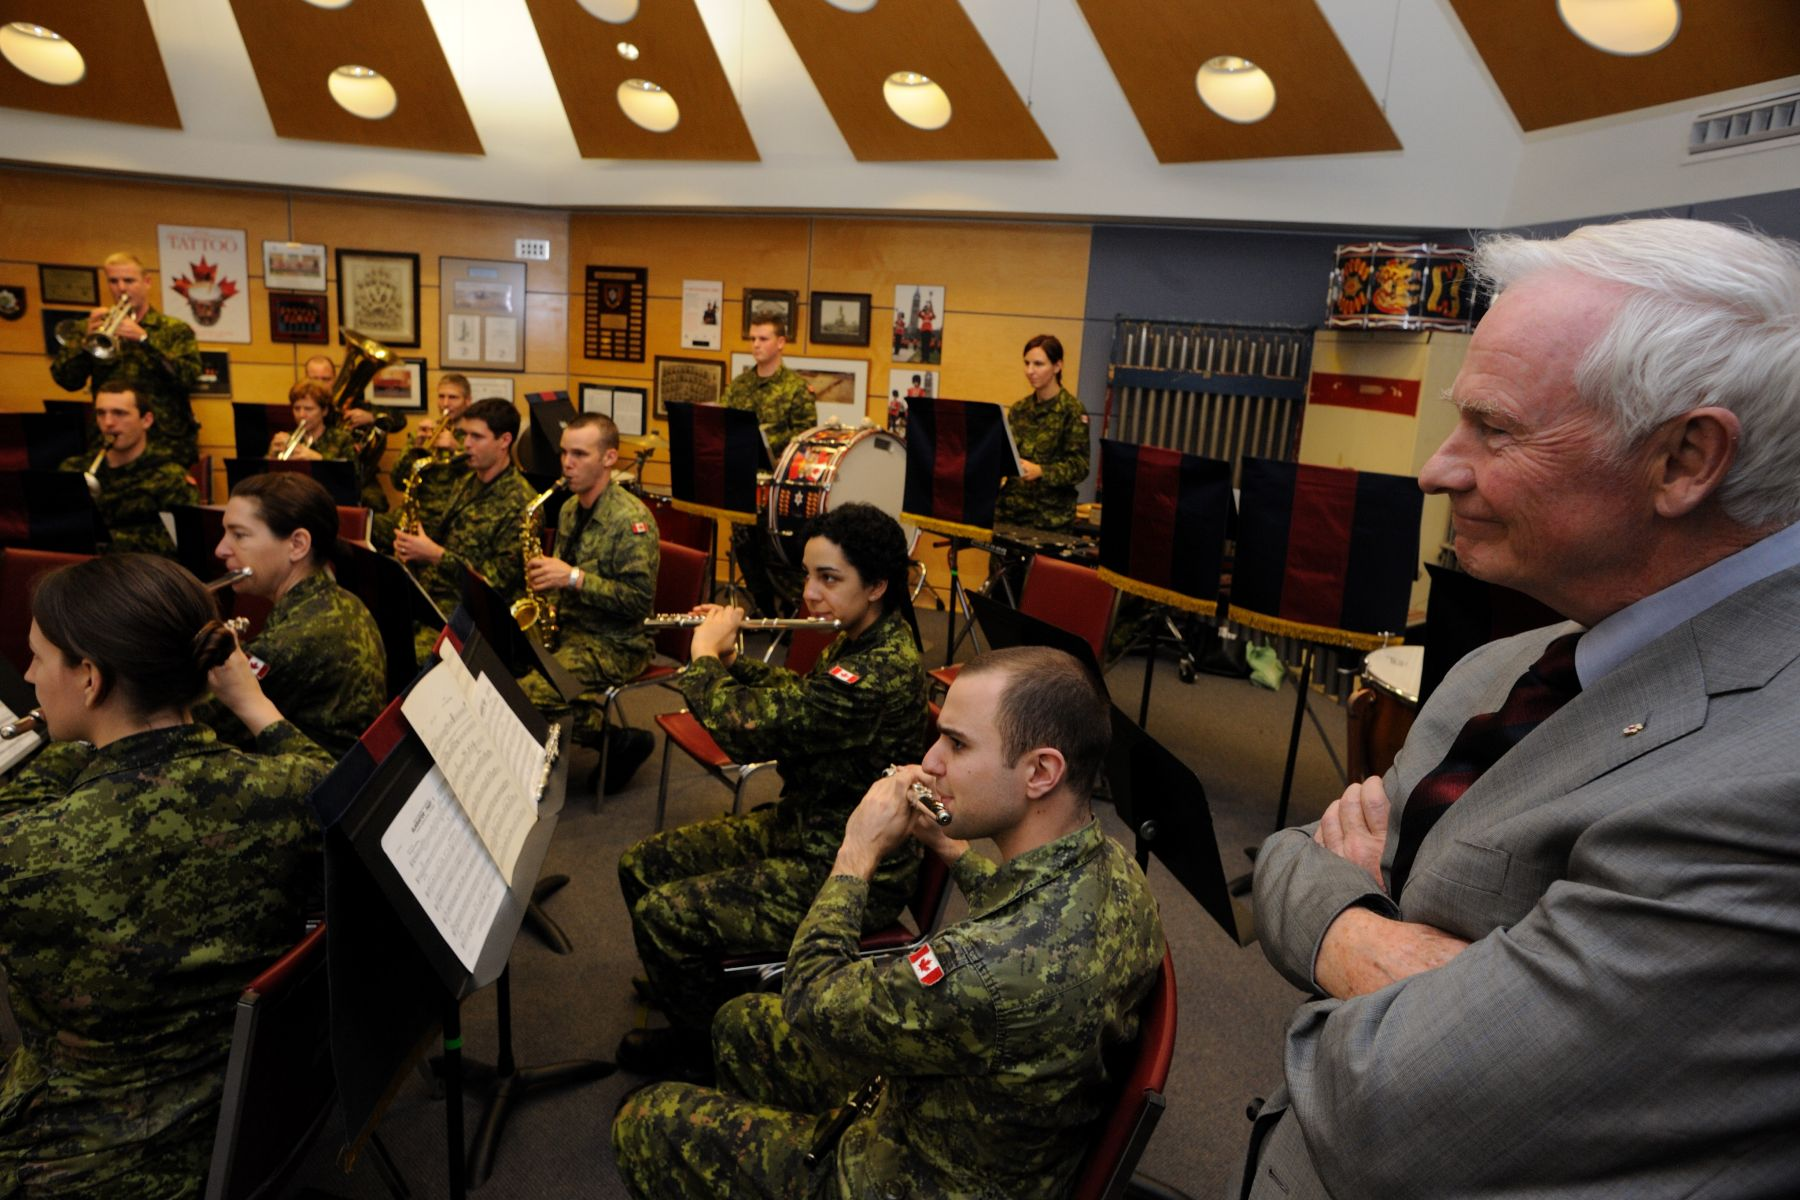 His Excellency also stopped in the Band Room to meet with the musicians. The GGFG is a primary reserve infantry battalion raised on June 7, 1872 in Ottawa. They have been supporting the governor general and participating in official events at Rideau Hall since the year the regiment was formed. Every summer, the GGFG perform the Changing the Guard ceremony and post sentries at Rideau Hall.